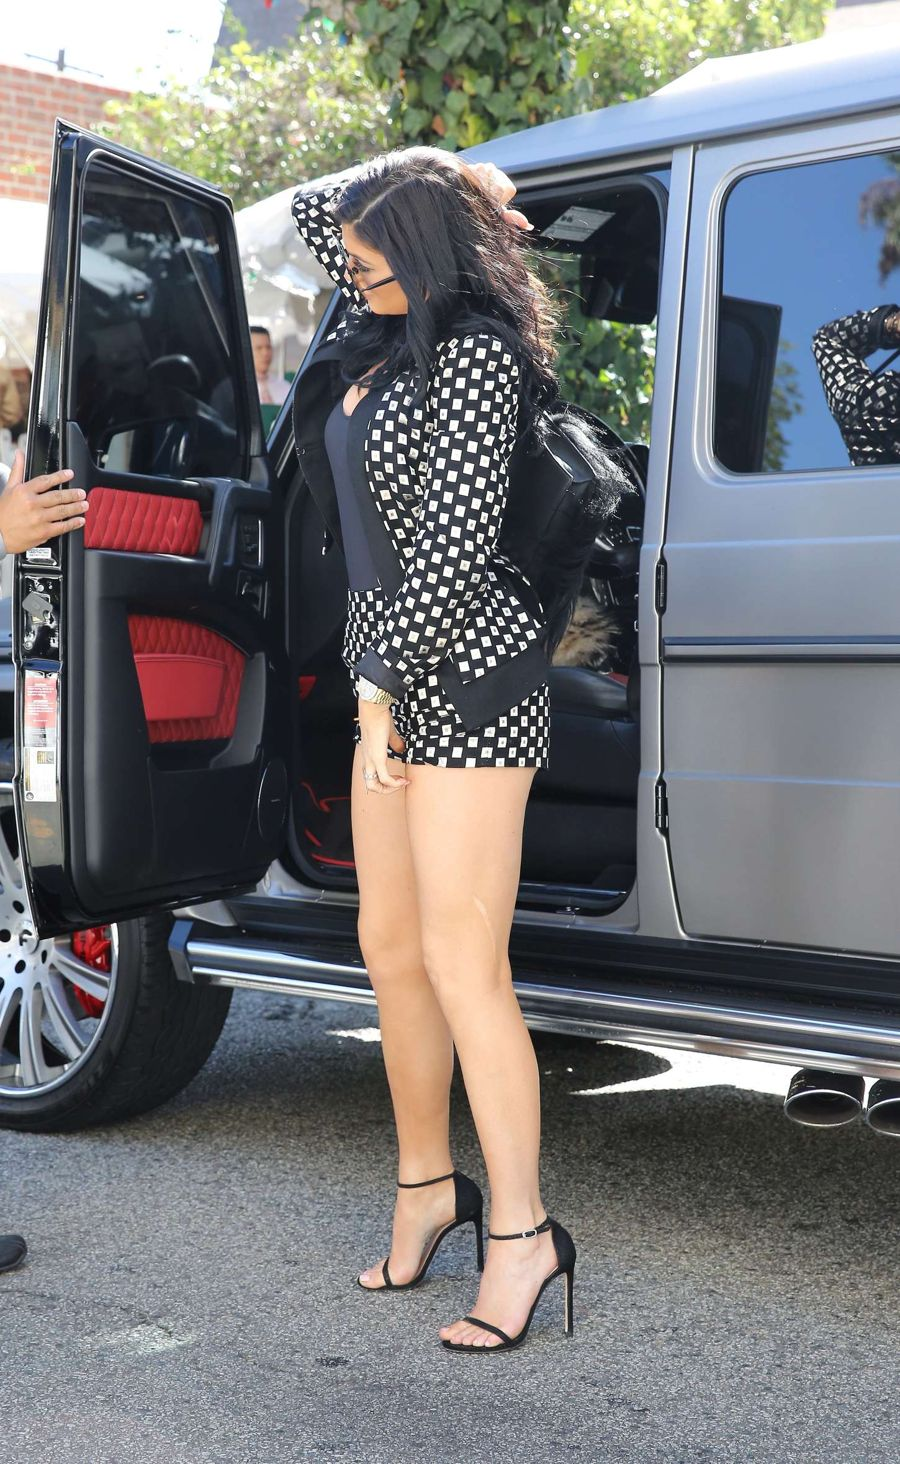 Kylie Jenner at Gas Station before Ivy Restaurant